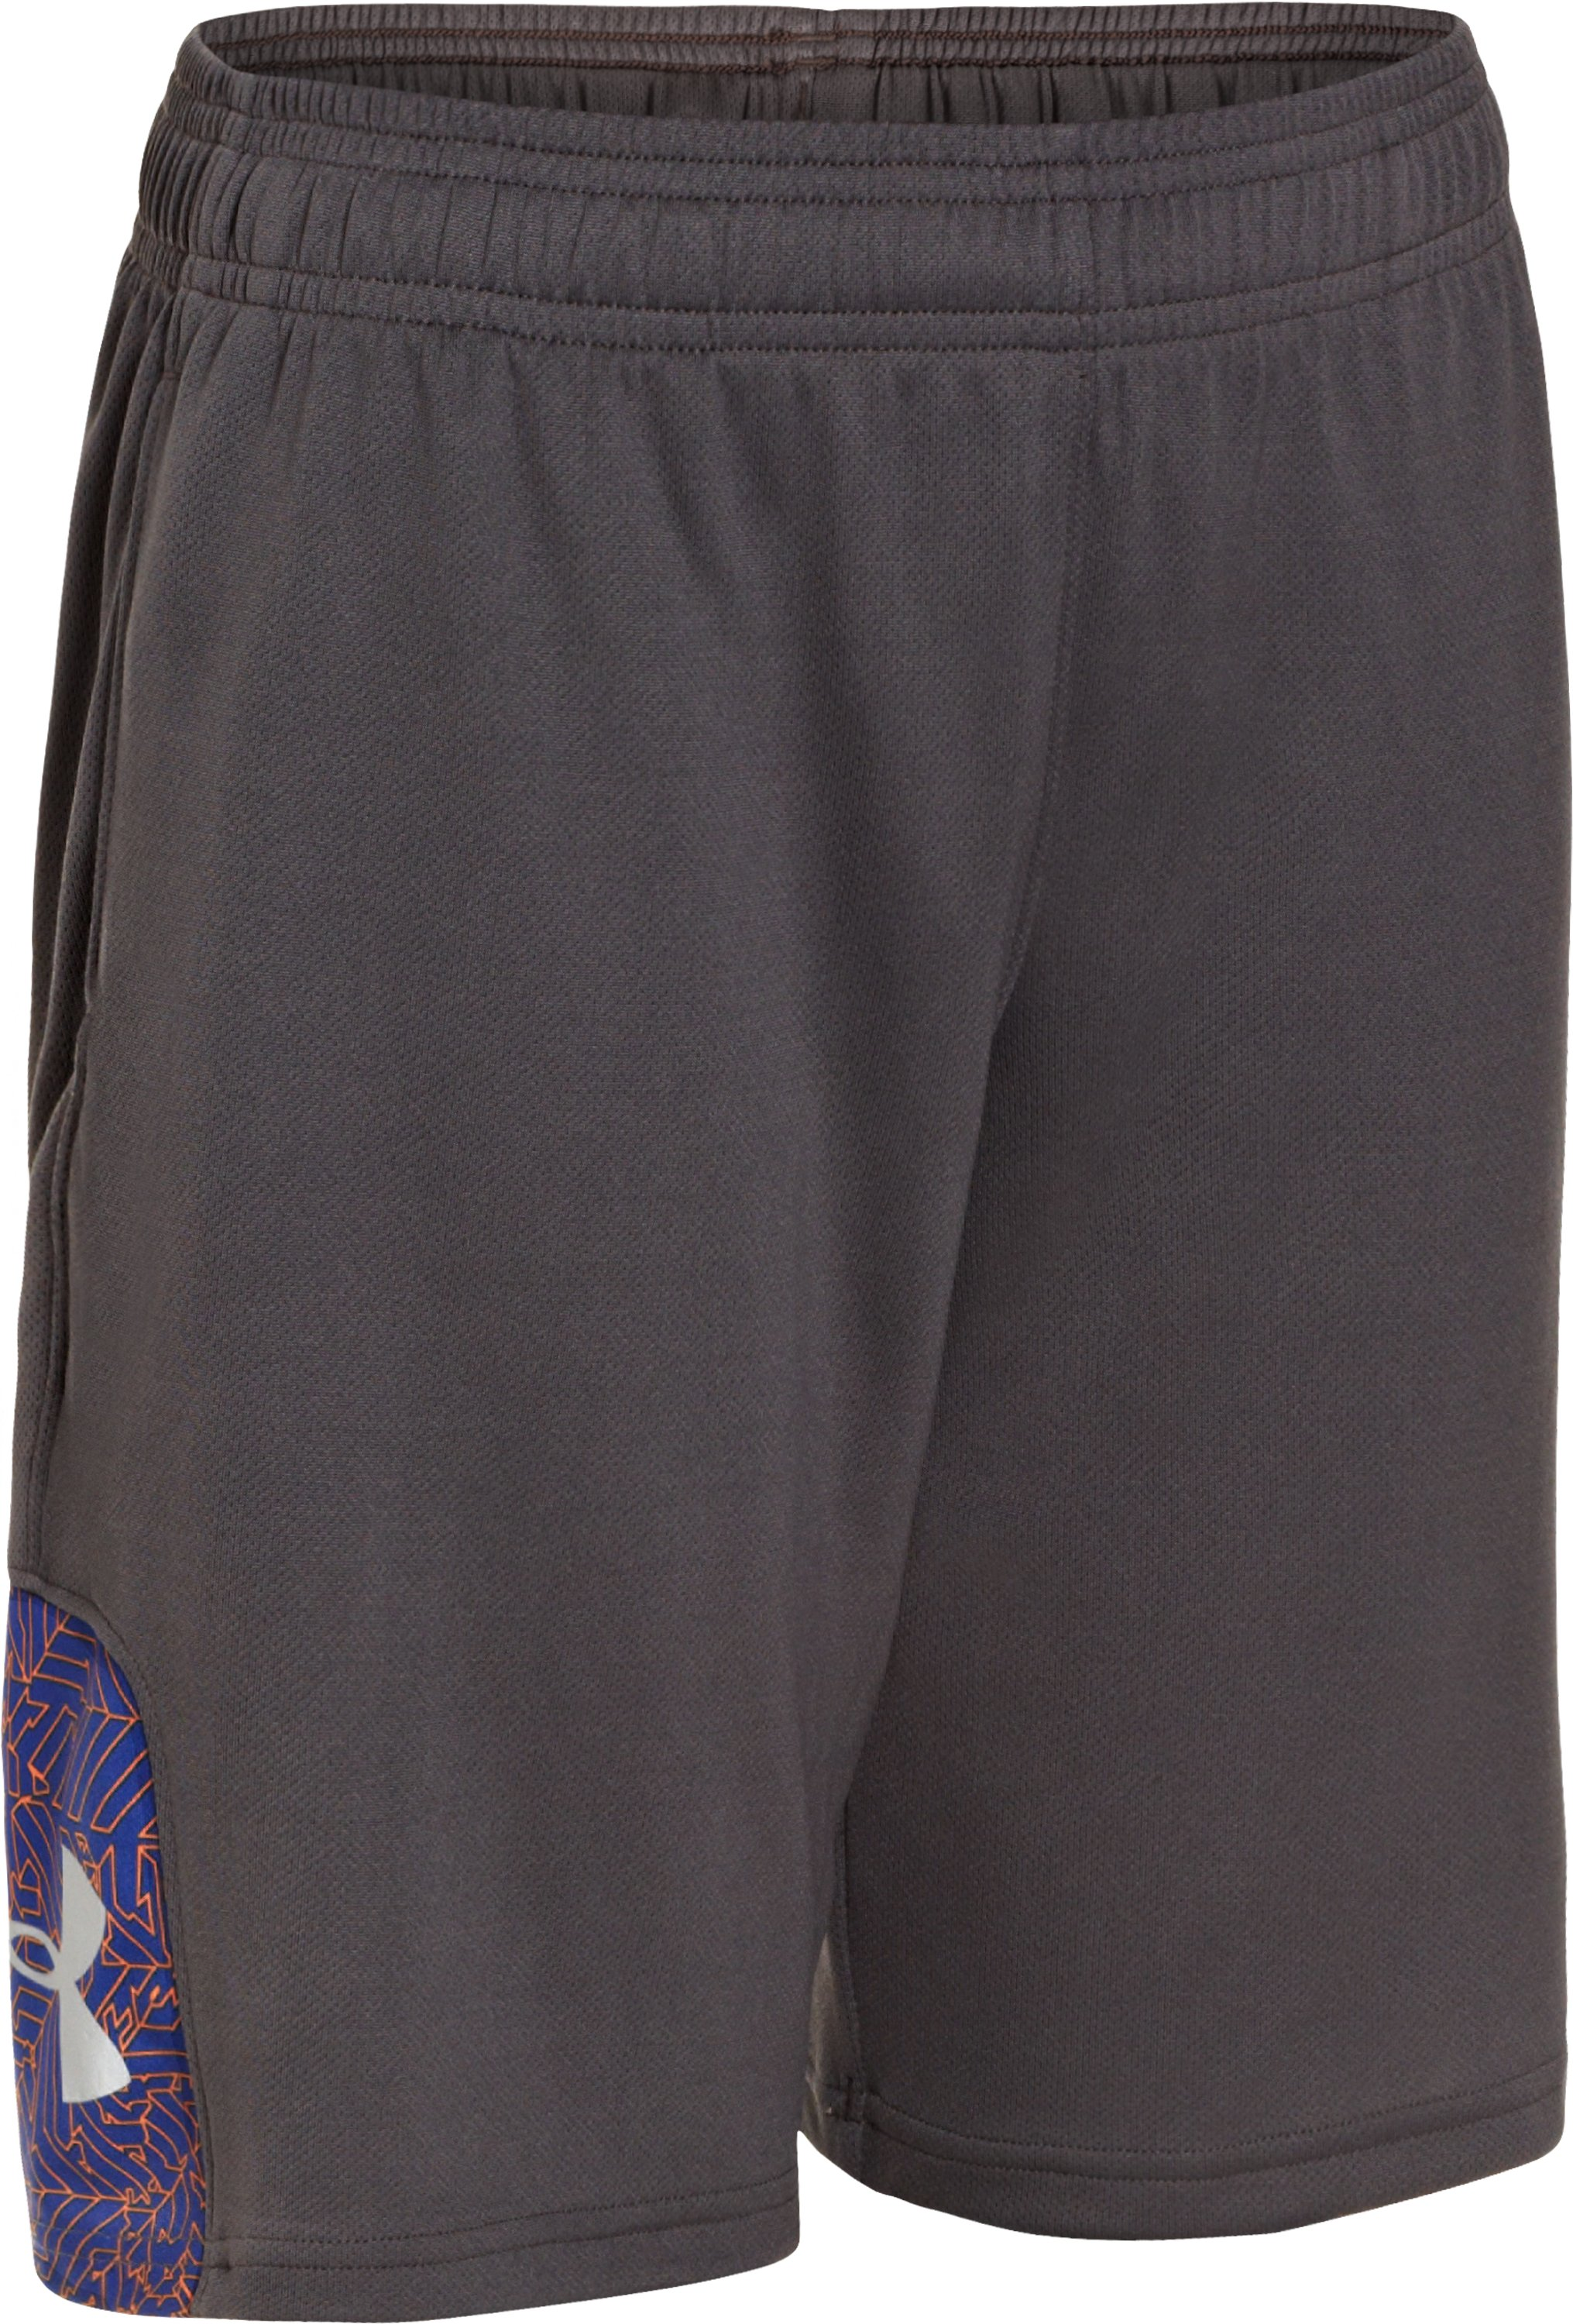 Boys' UA Watch Out Shorts, Charcoal, zoomed image